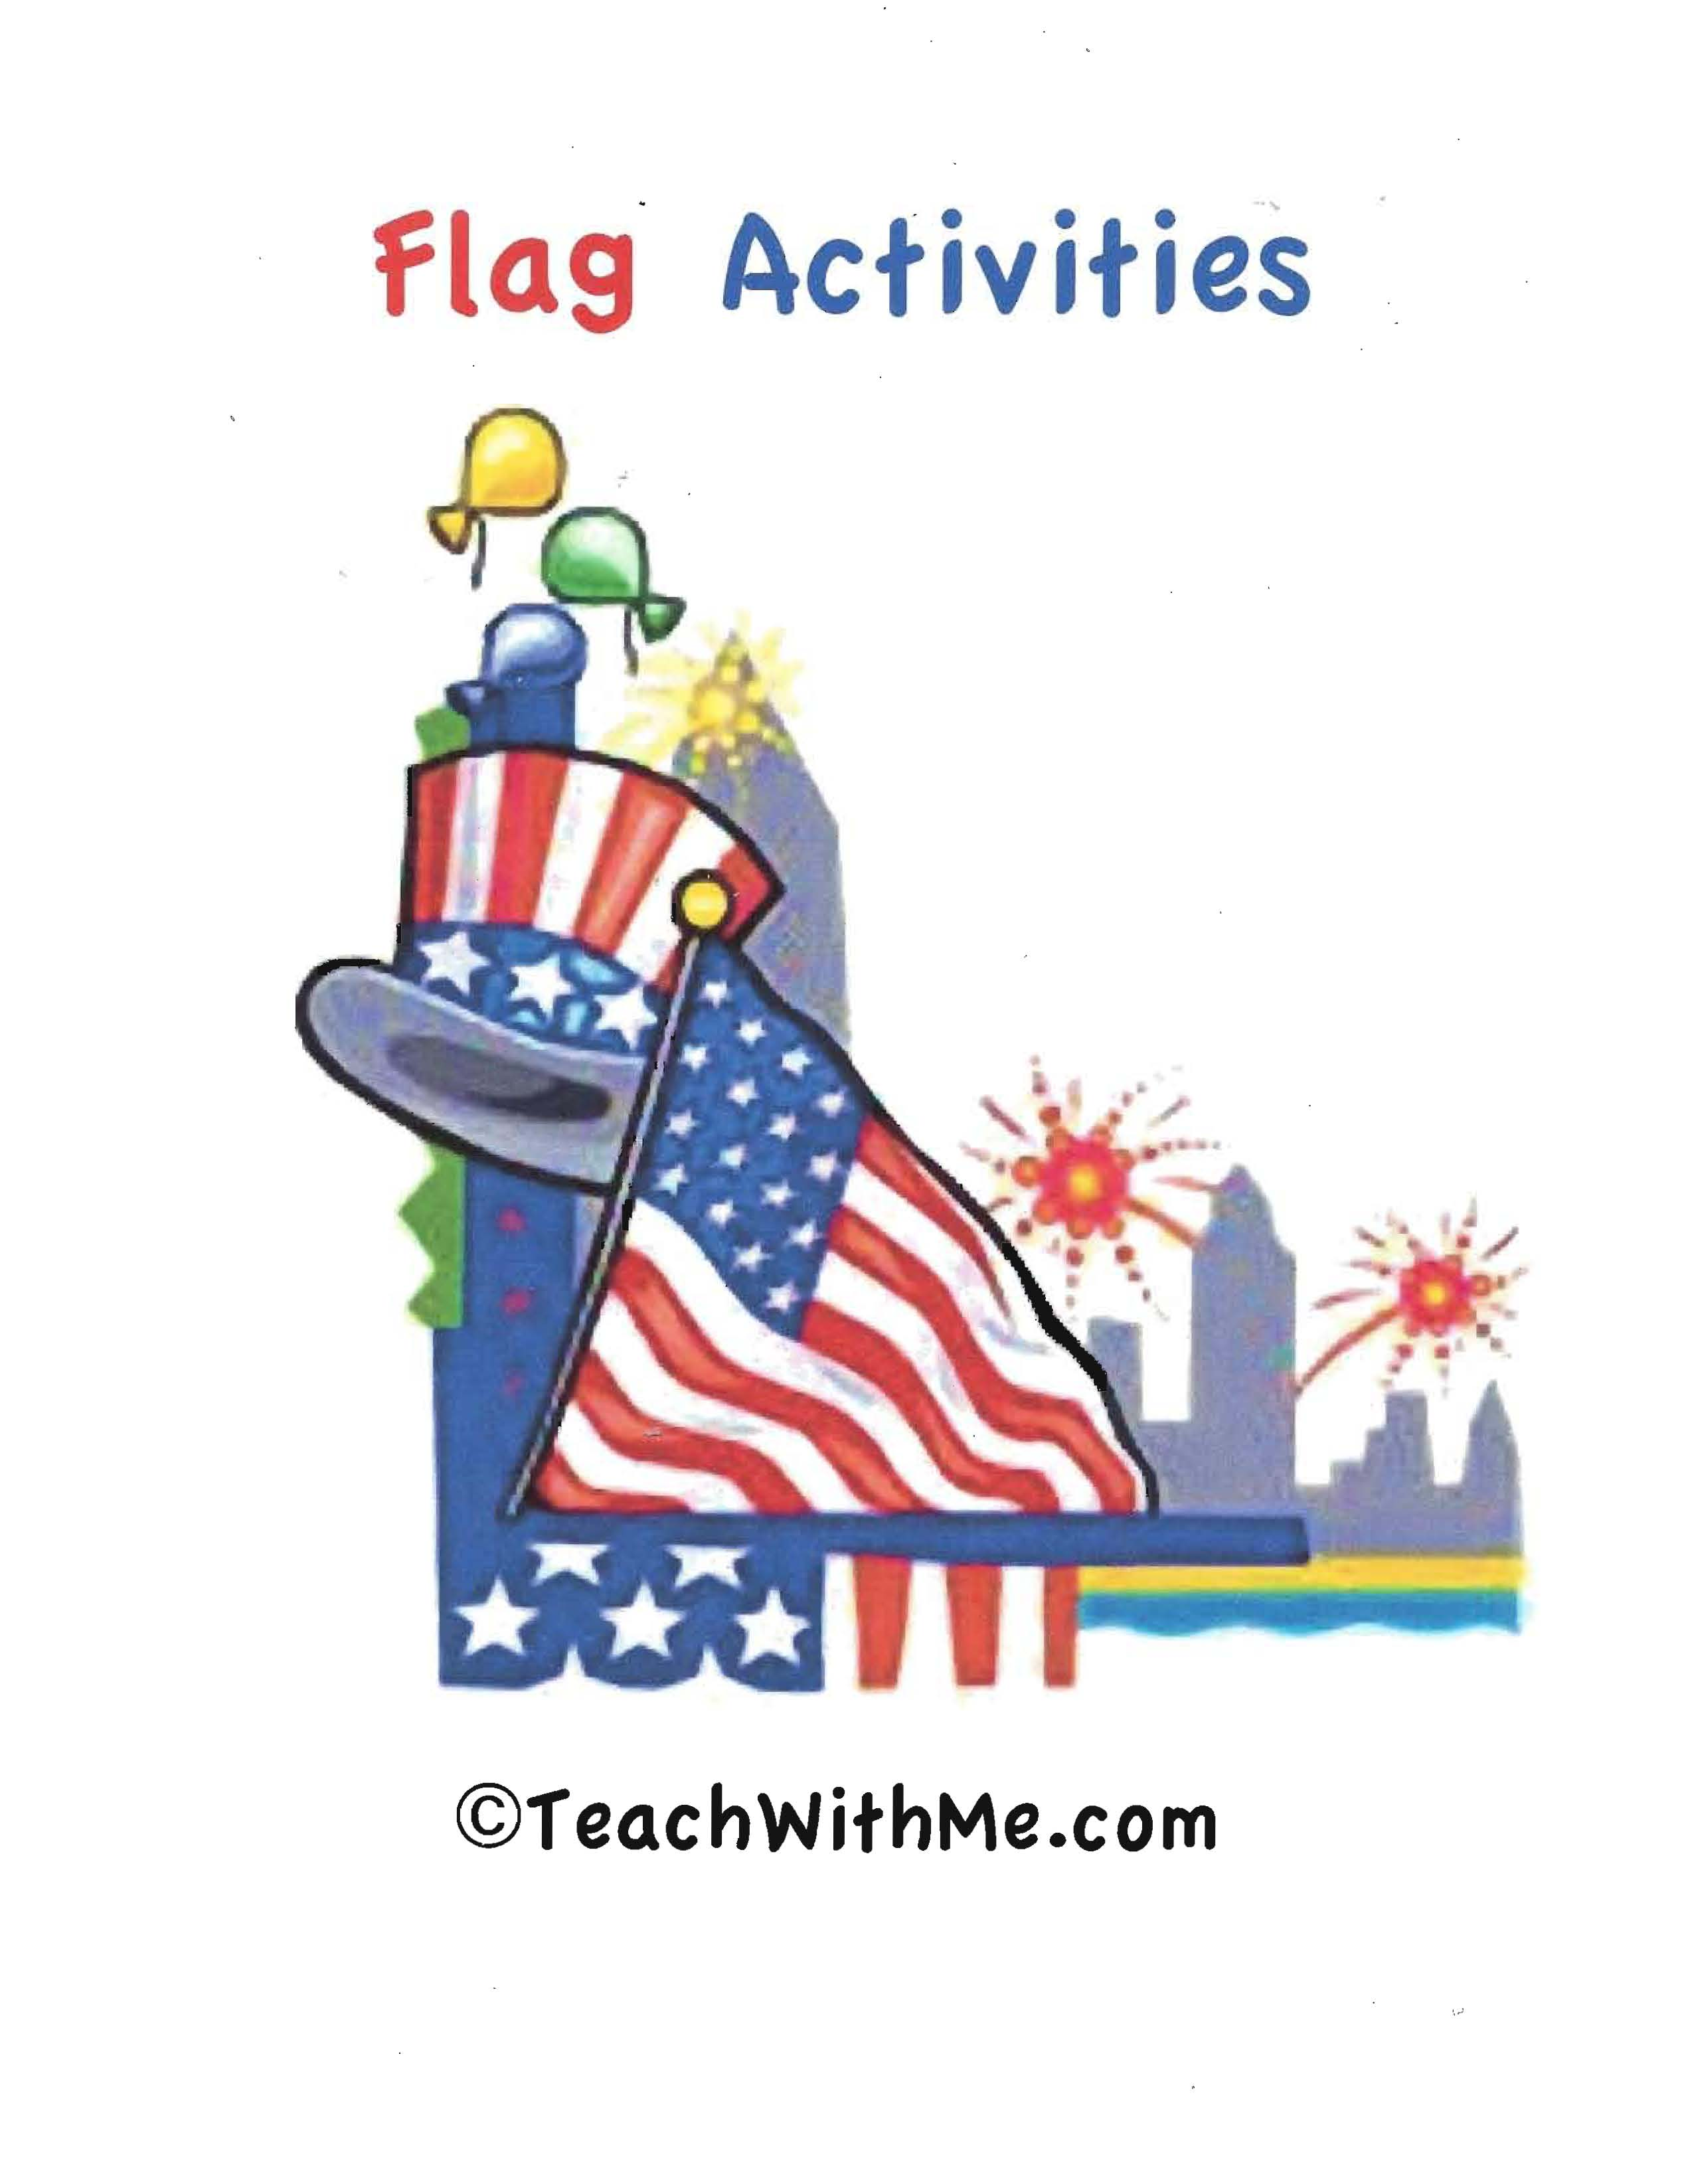 back to school ideas, back to school lessons, back to school activities, teaching the pledge of allegiance, pledge of allegiance in kid friendly words, flag booklet, flag lessons, flag activities, pledge of allegiance activities, pledge of allegiance lessons, back to school bulletin boards, september bulletin board ideas, constitution day lessons, constitution day activities, constitution day ideas, constitution day writing prompts, proud to be an american writing prompt, class books,